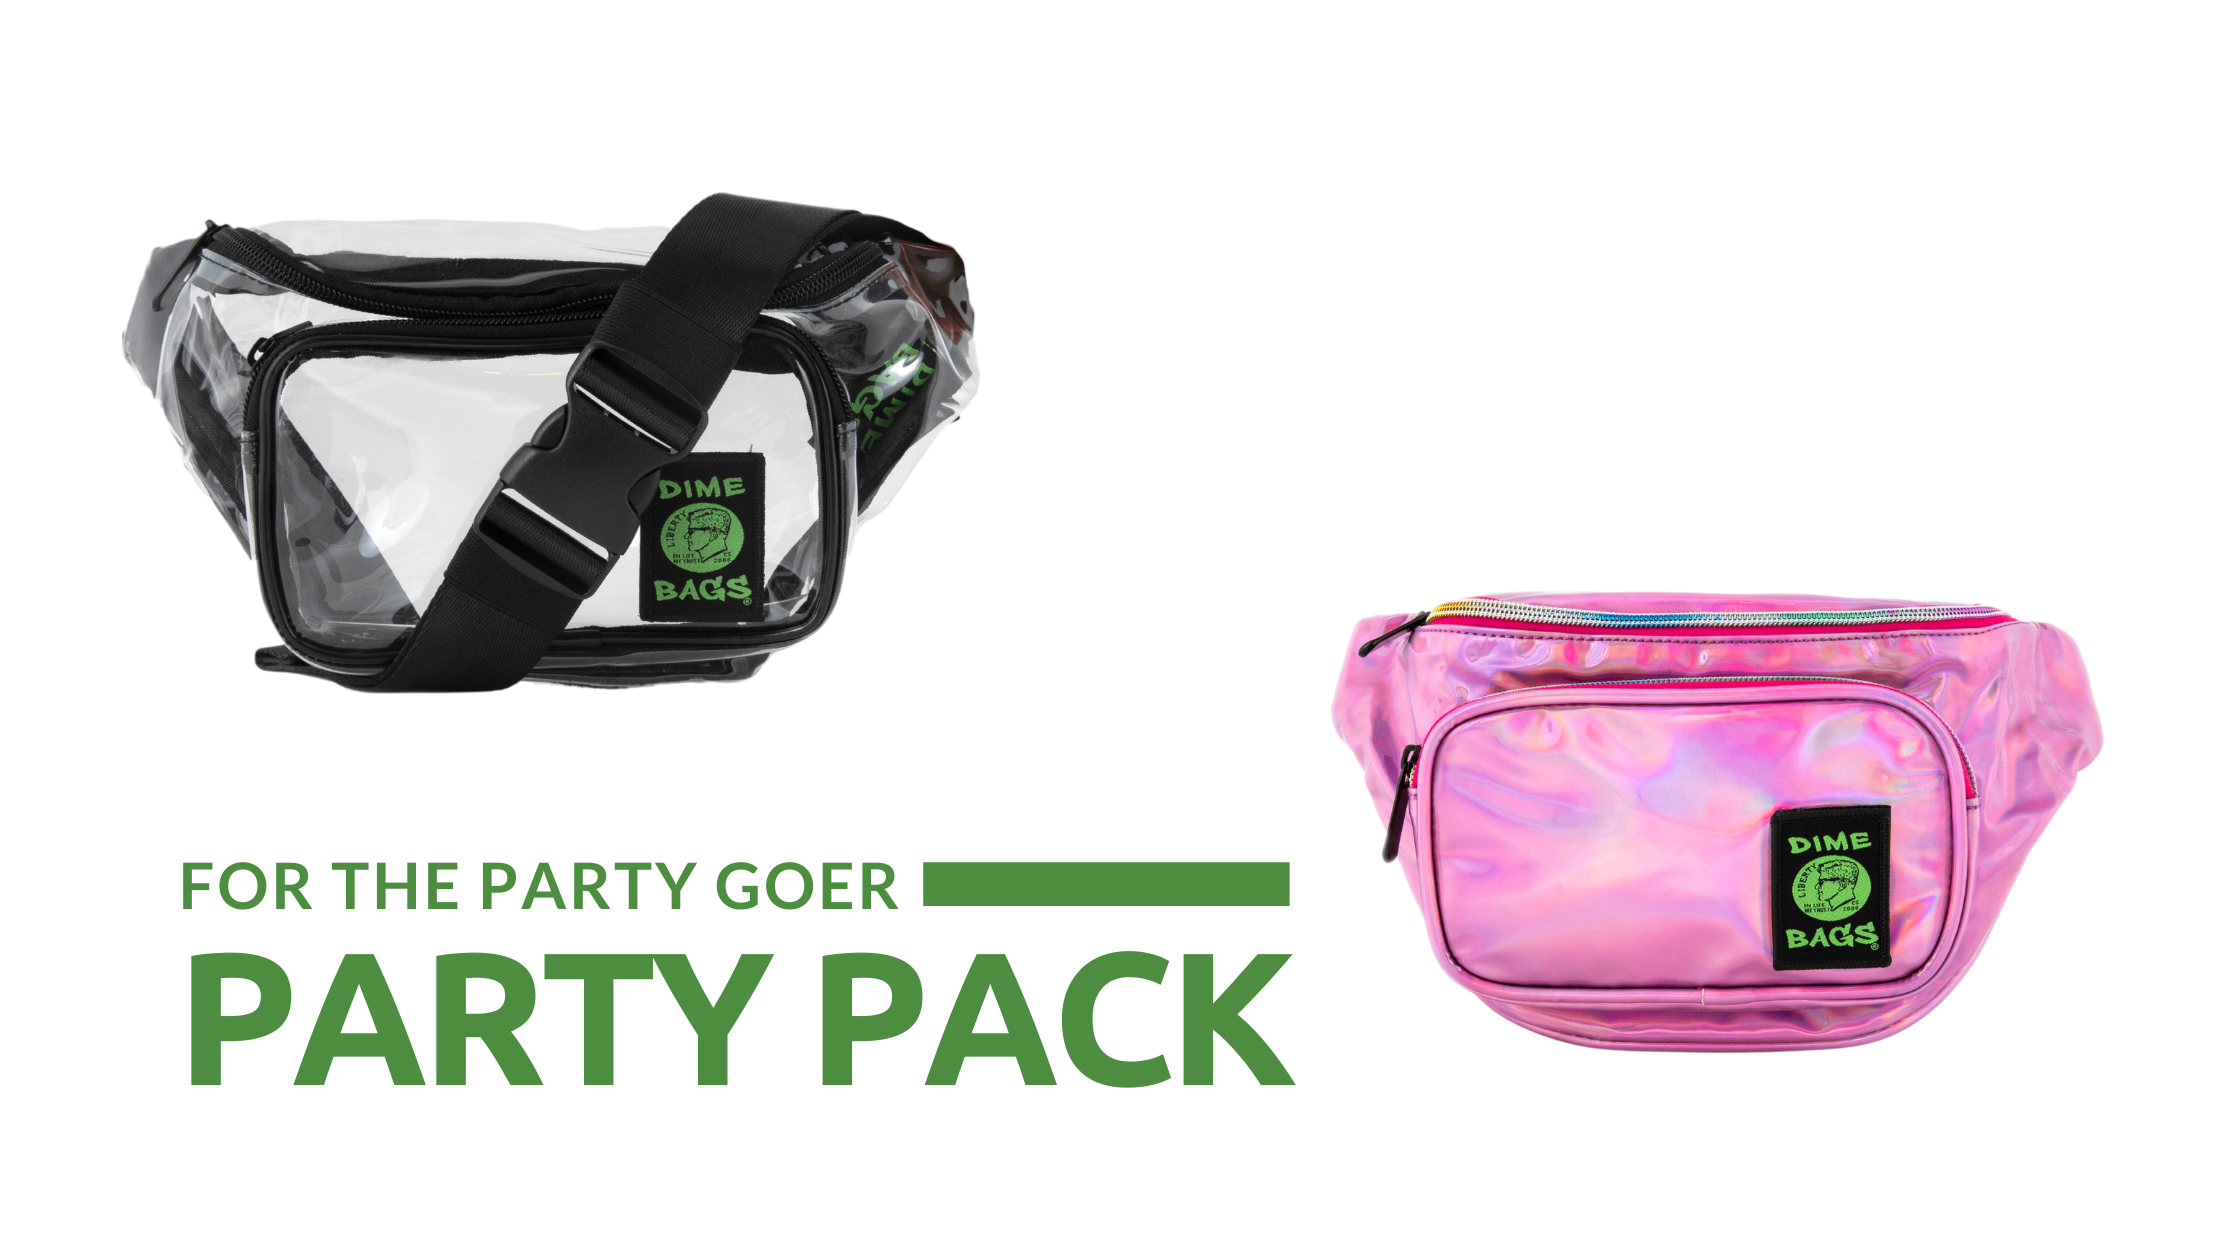 Party Pack | Dime Bags | Fanny Pack | New Dime Bags